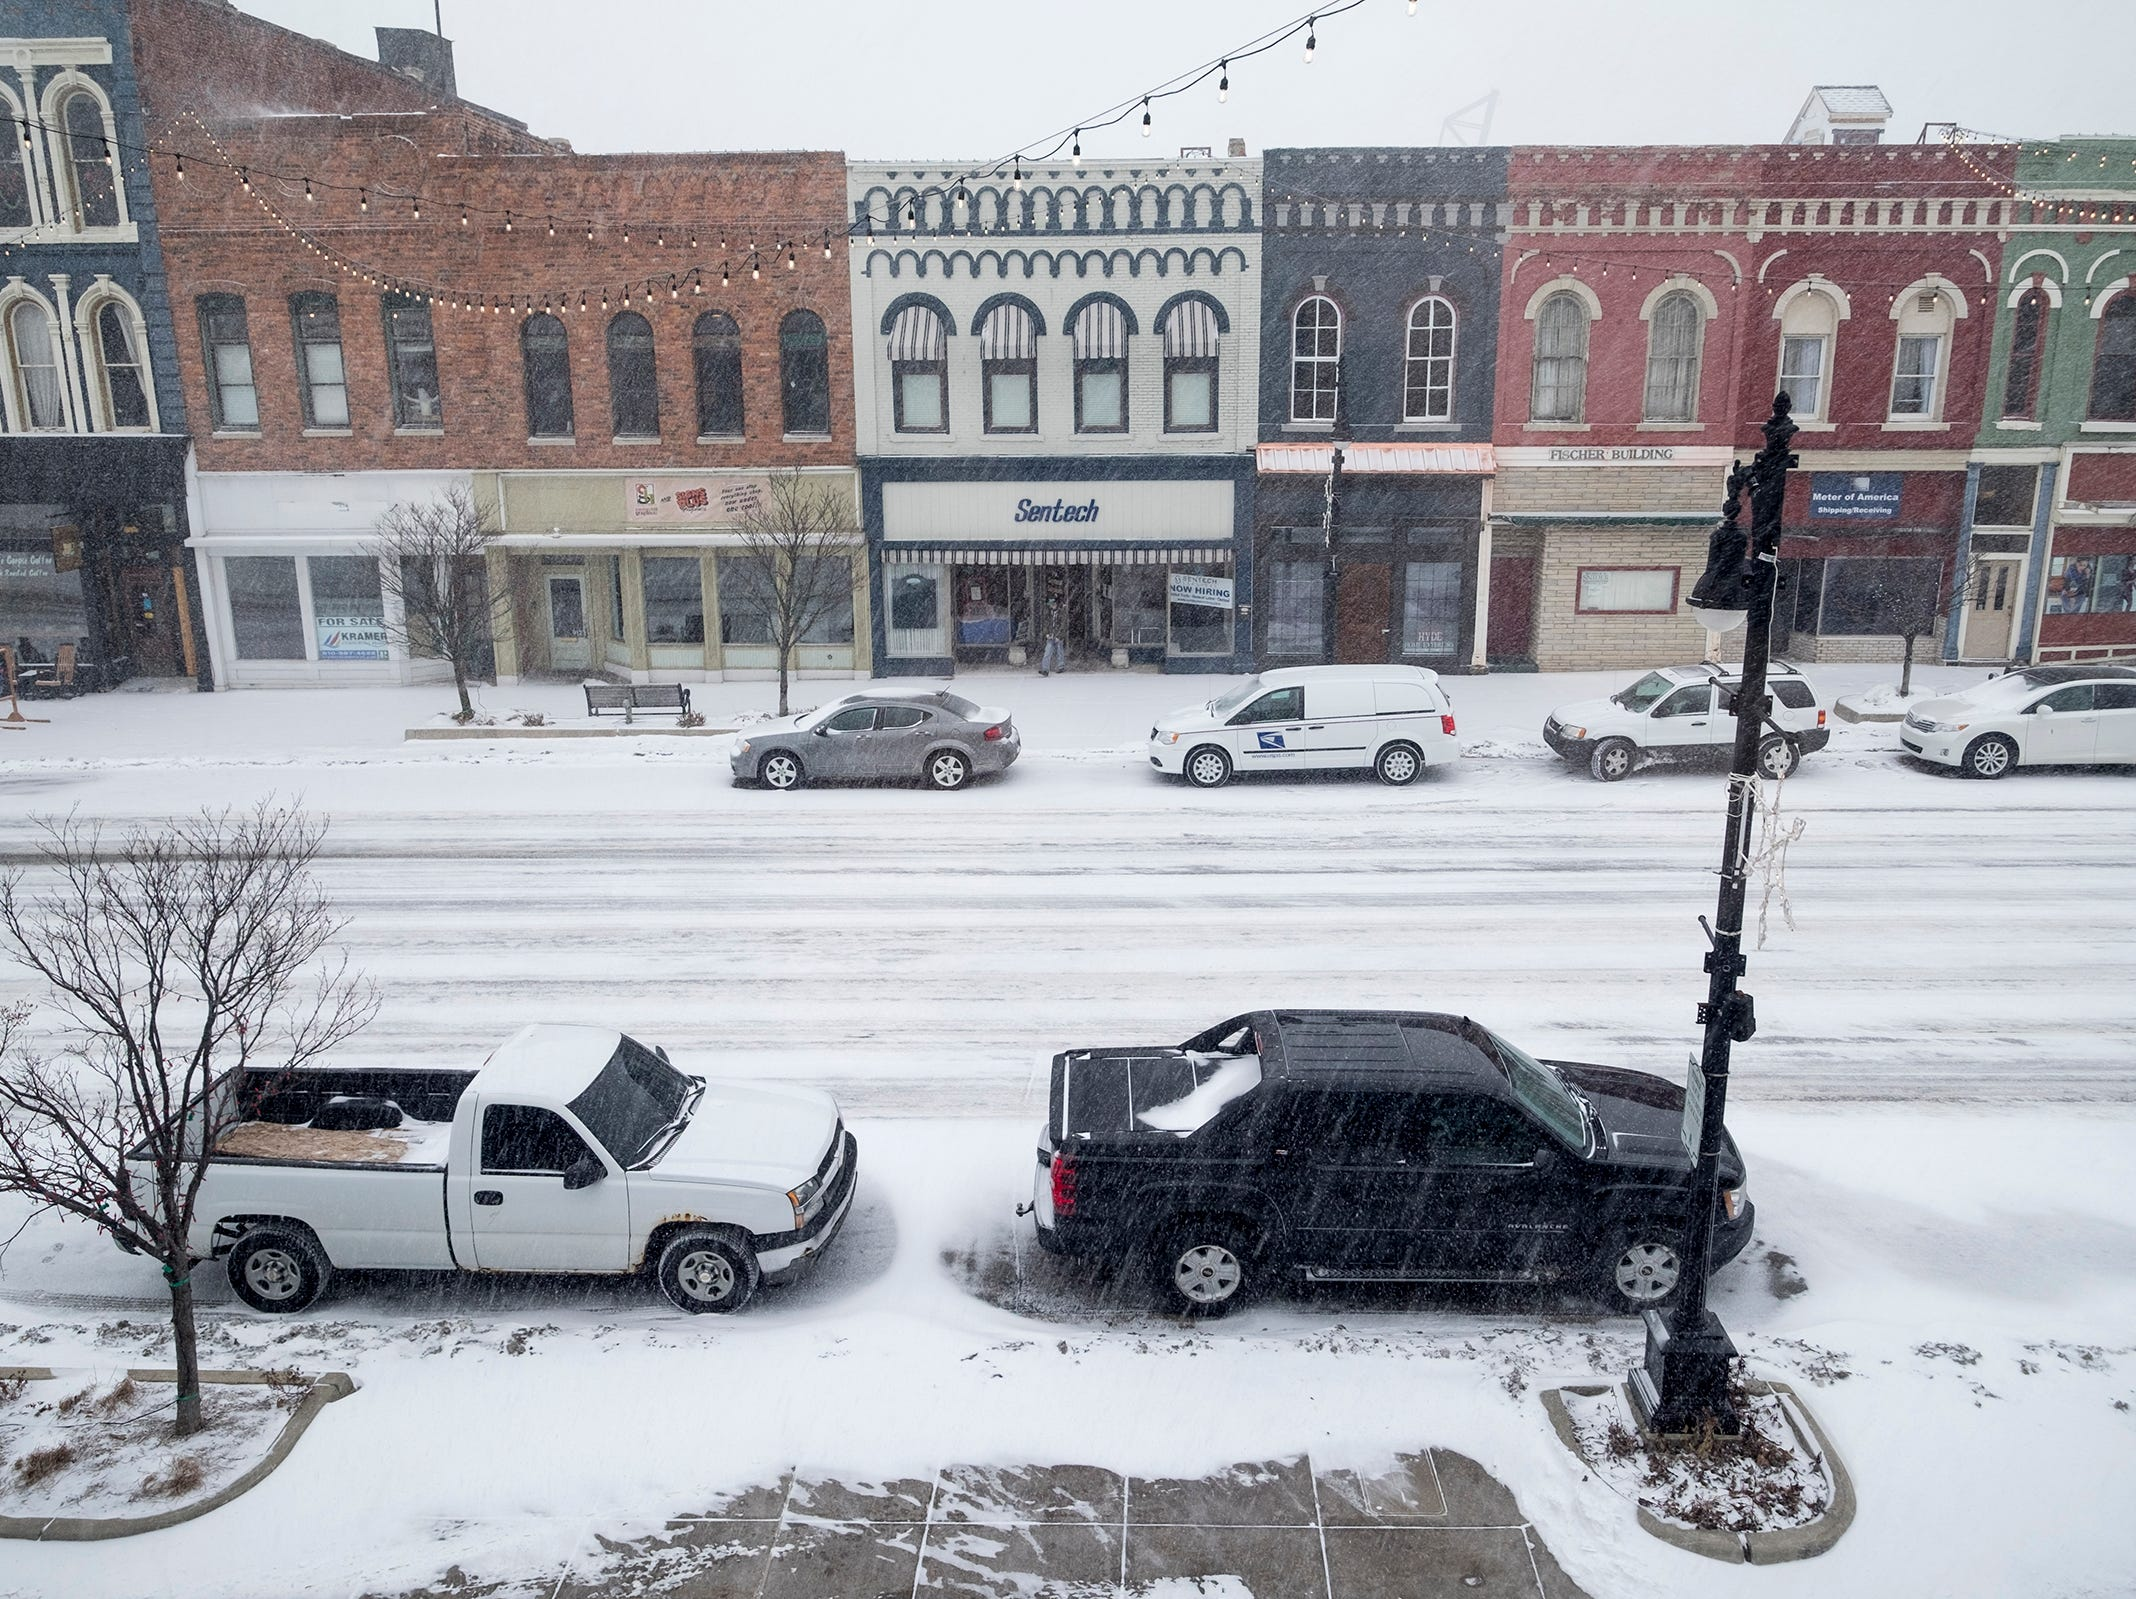 Snow falls in downtown Port Huron Monday, Jan. 28, 2019. As of noon Monday, the National Weather Service predicted a total snow accumulation